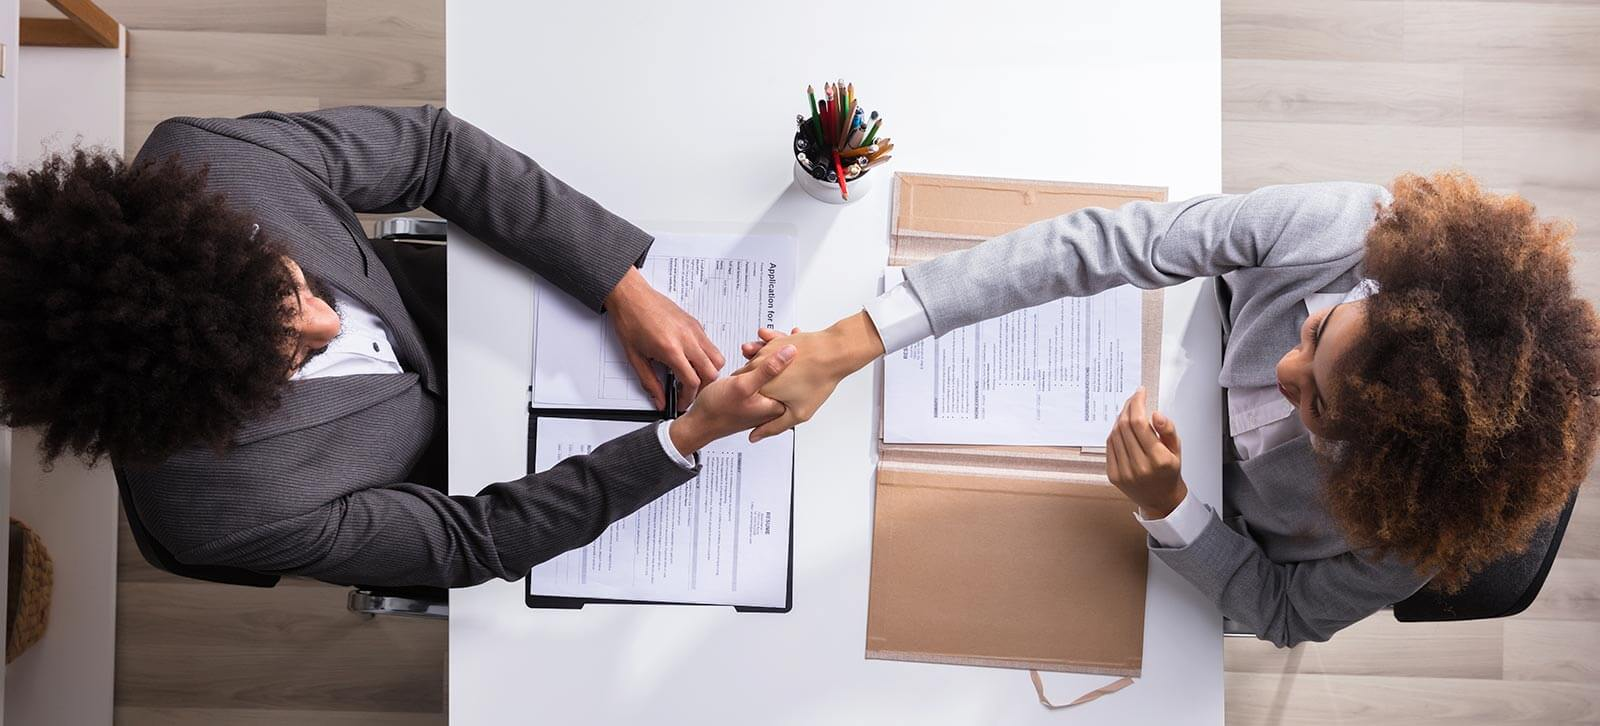 How to Hire a Recruiting Agency